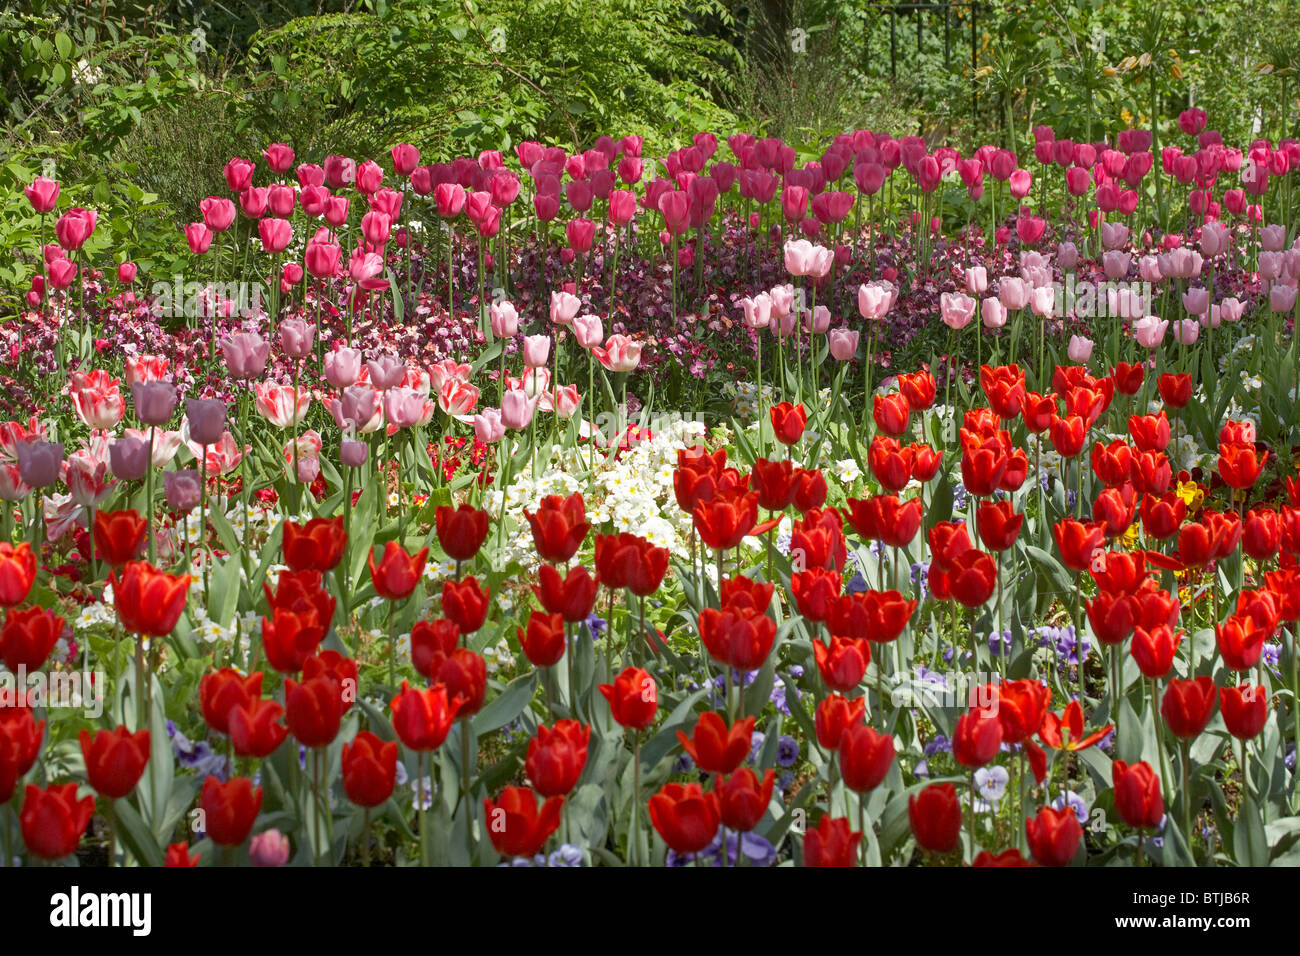 Tulips, St. James's Park, London, England, United Kingdom - Stock Image